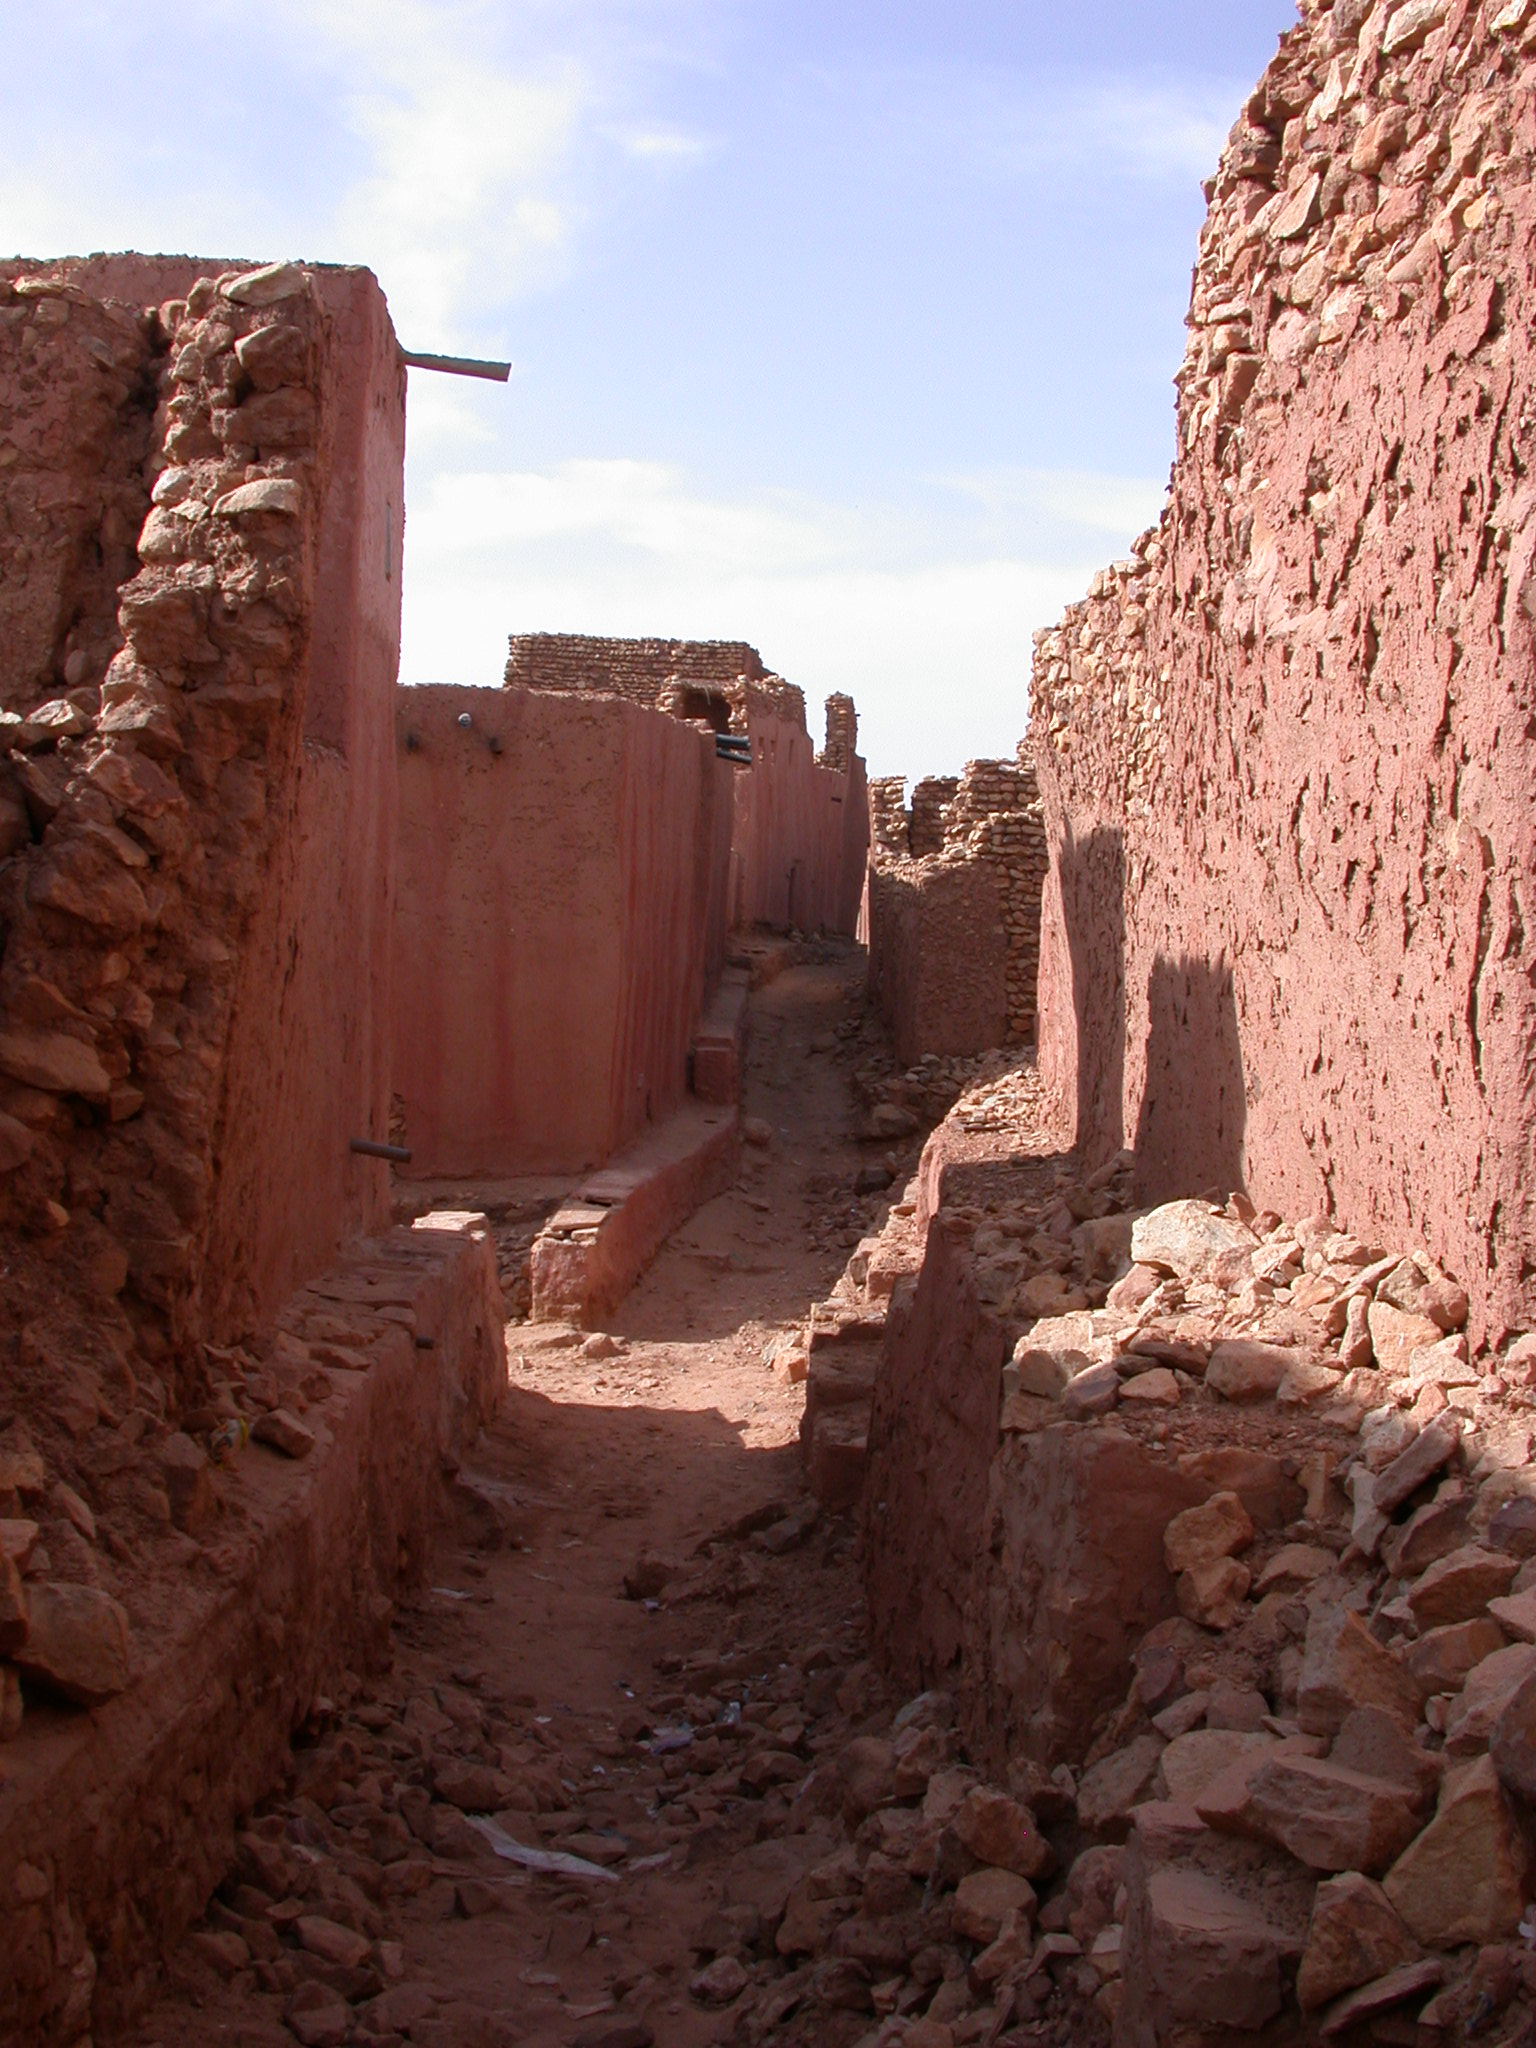 Thin Passage in Ancient City of Oulata, Mauritania